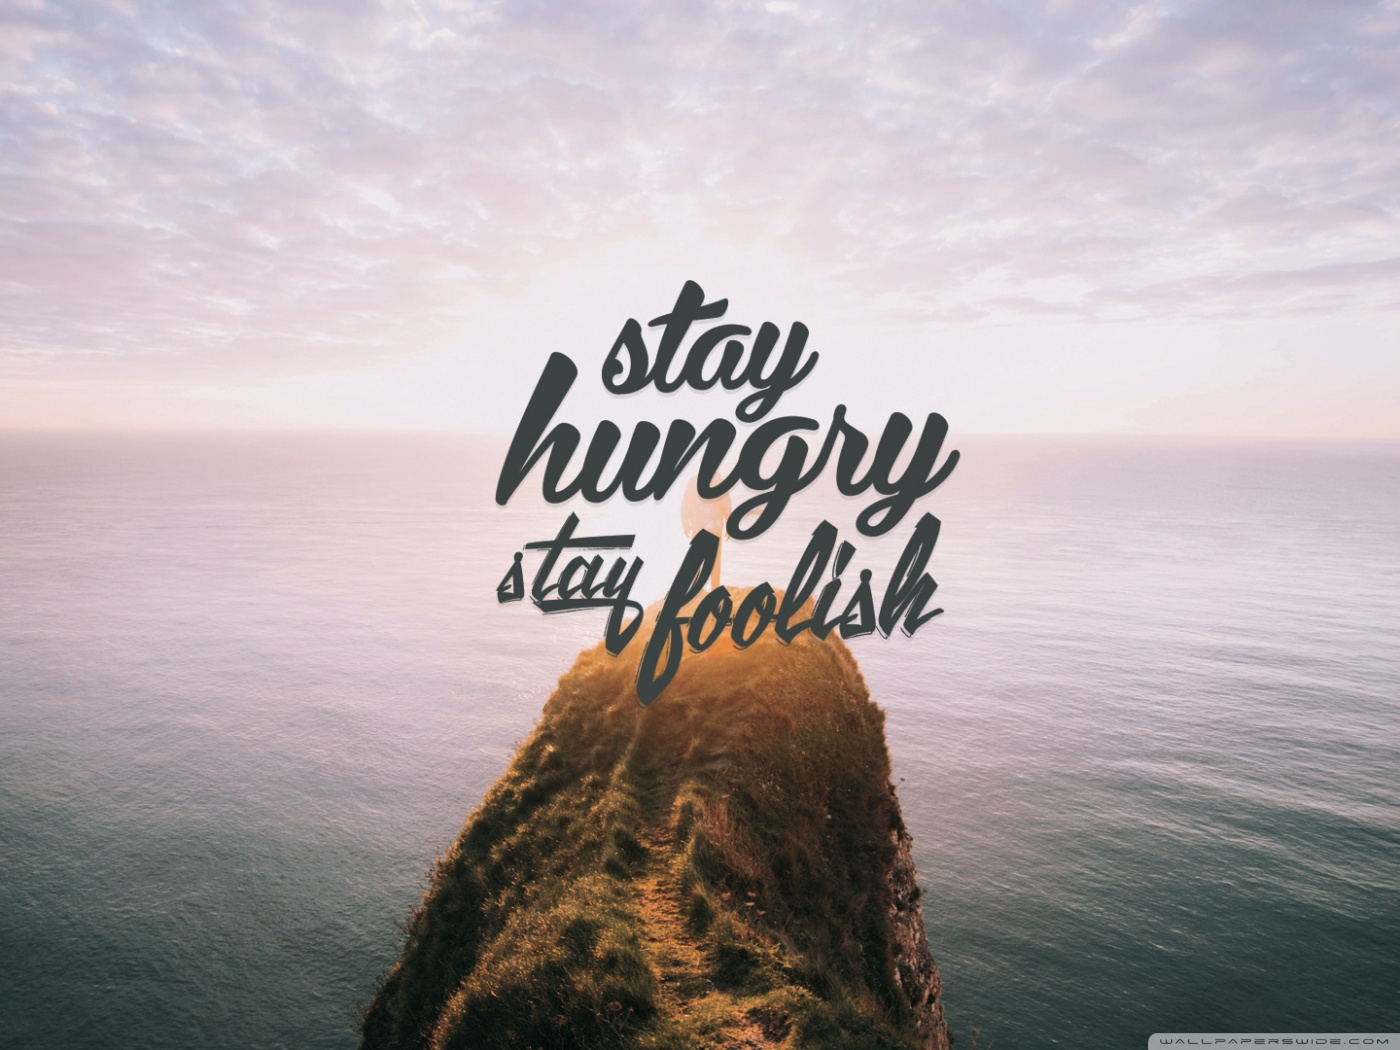 Motivational Quotes Wallpapers Hd For Mobile Stay Hungry Stay Foolish Inspirational 4k Hd Desktop